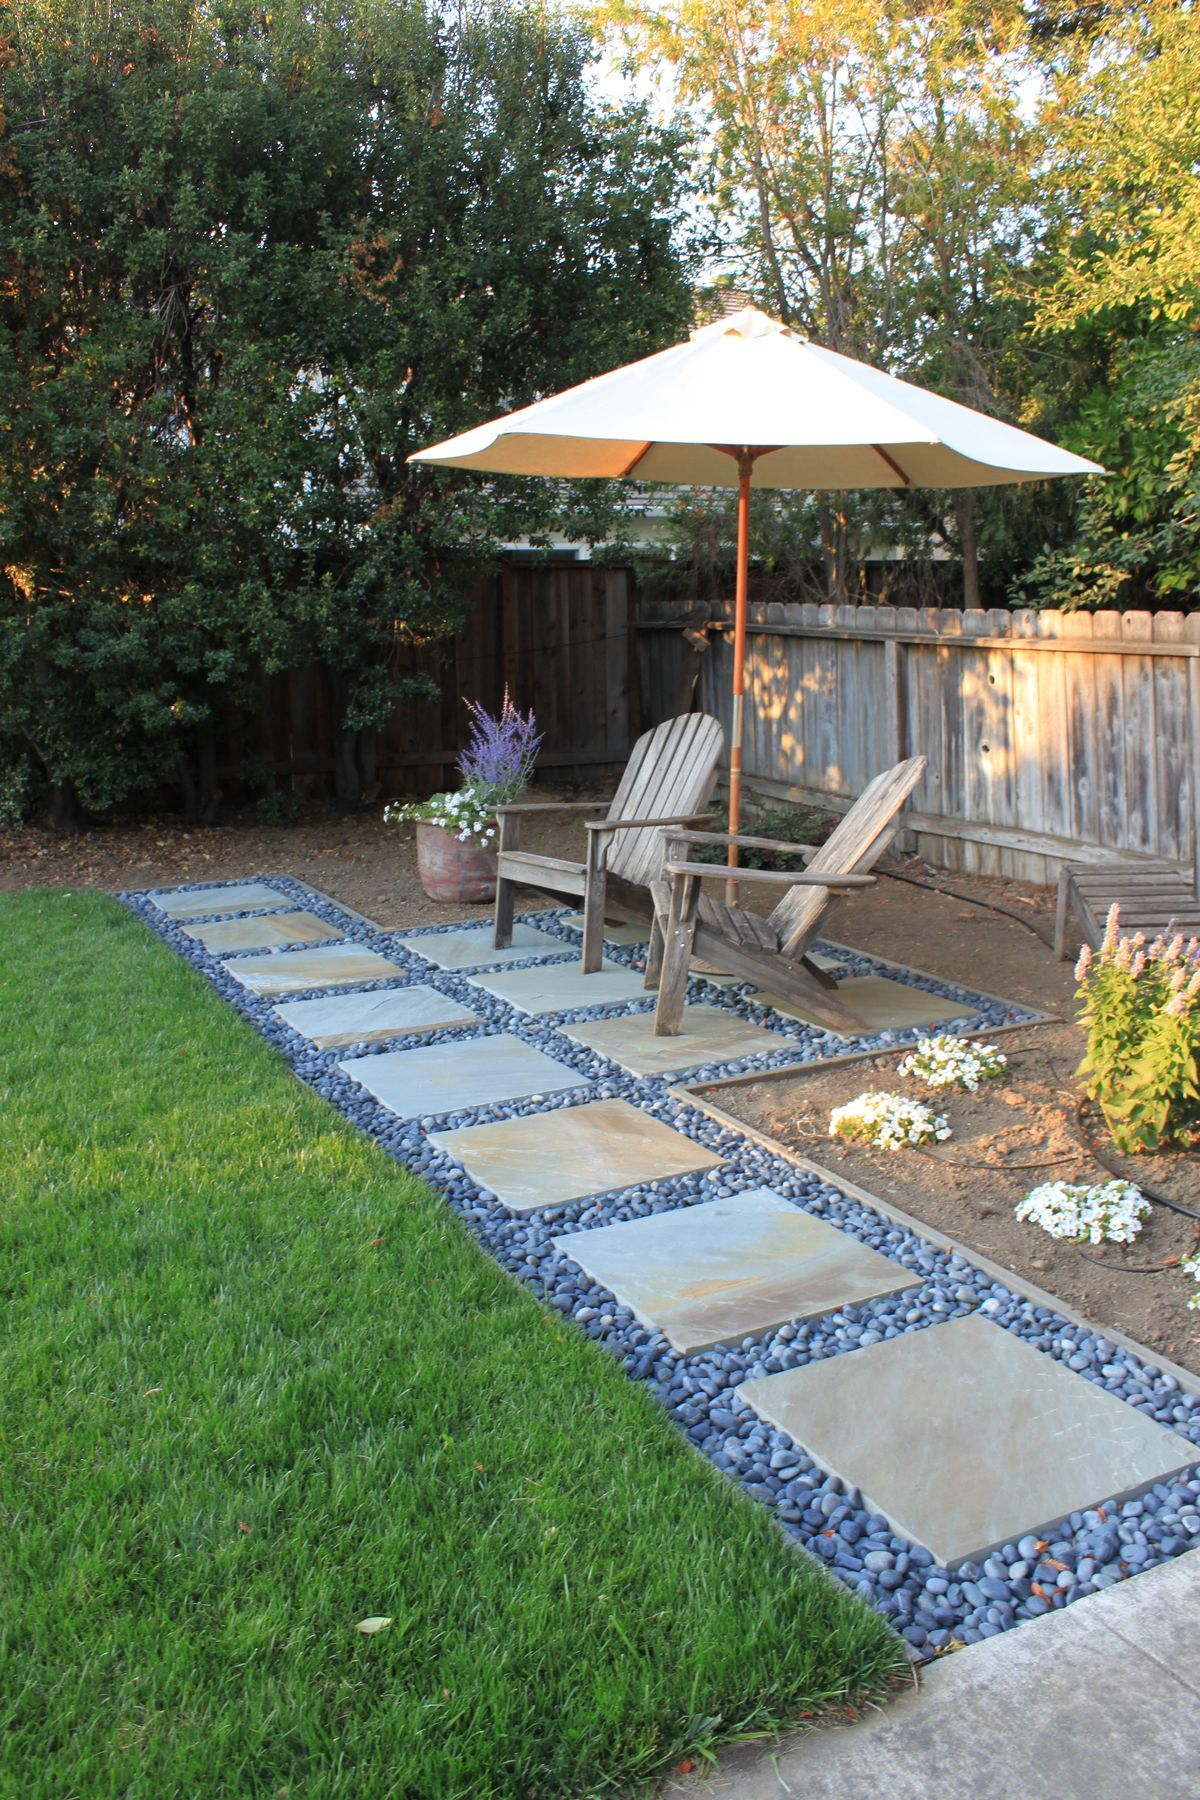 Pin Peggy Peters On Landscaping Backyard Patio Designs with regard to Paver Ideas For Backyards